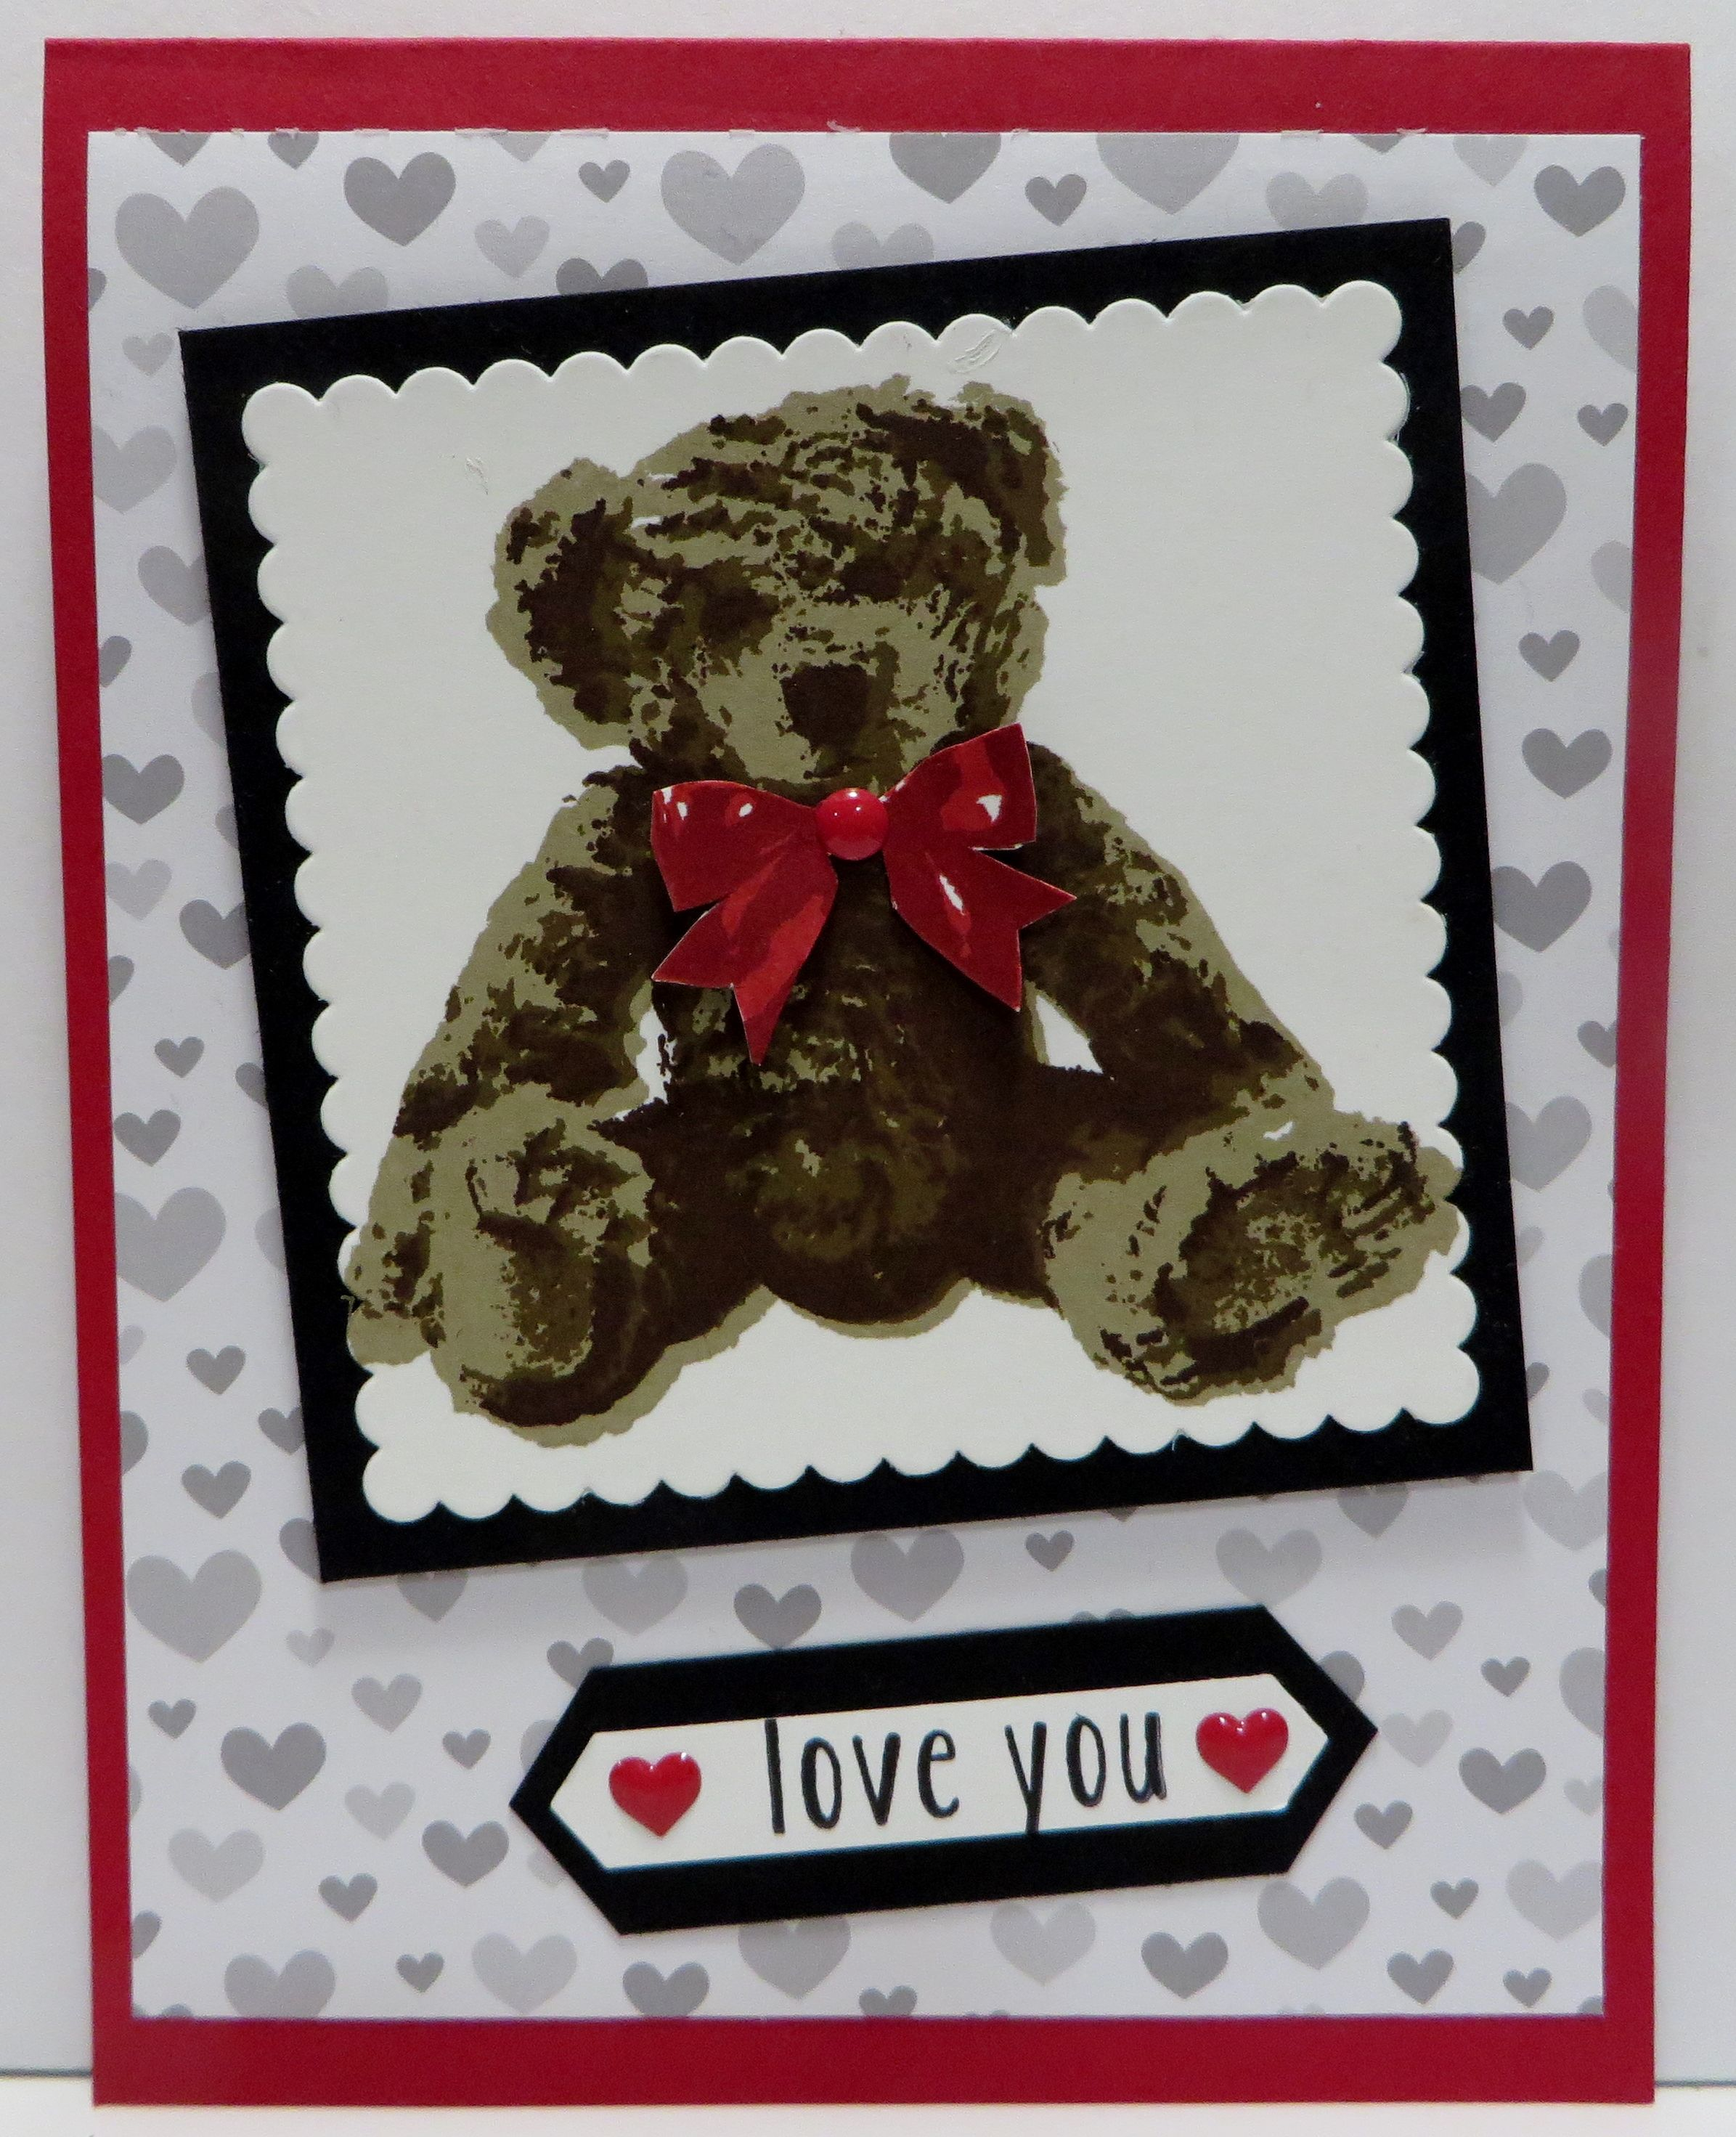 Stampin' Up Baby Bear Love card created by Lynn Gauthier using SU's Baby Bear Stamp Set, Layering Squares and Ovals Framelits Dies, Classic Label Punch and A Little Foxy Designer Series Paper.  Go to http://lynnslocker.blogspot.com/2016/08/stampin-up-baby-bear-little-foxy-iv.html to see how this card was made.